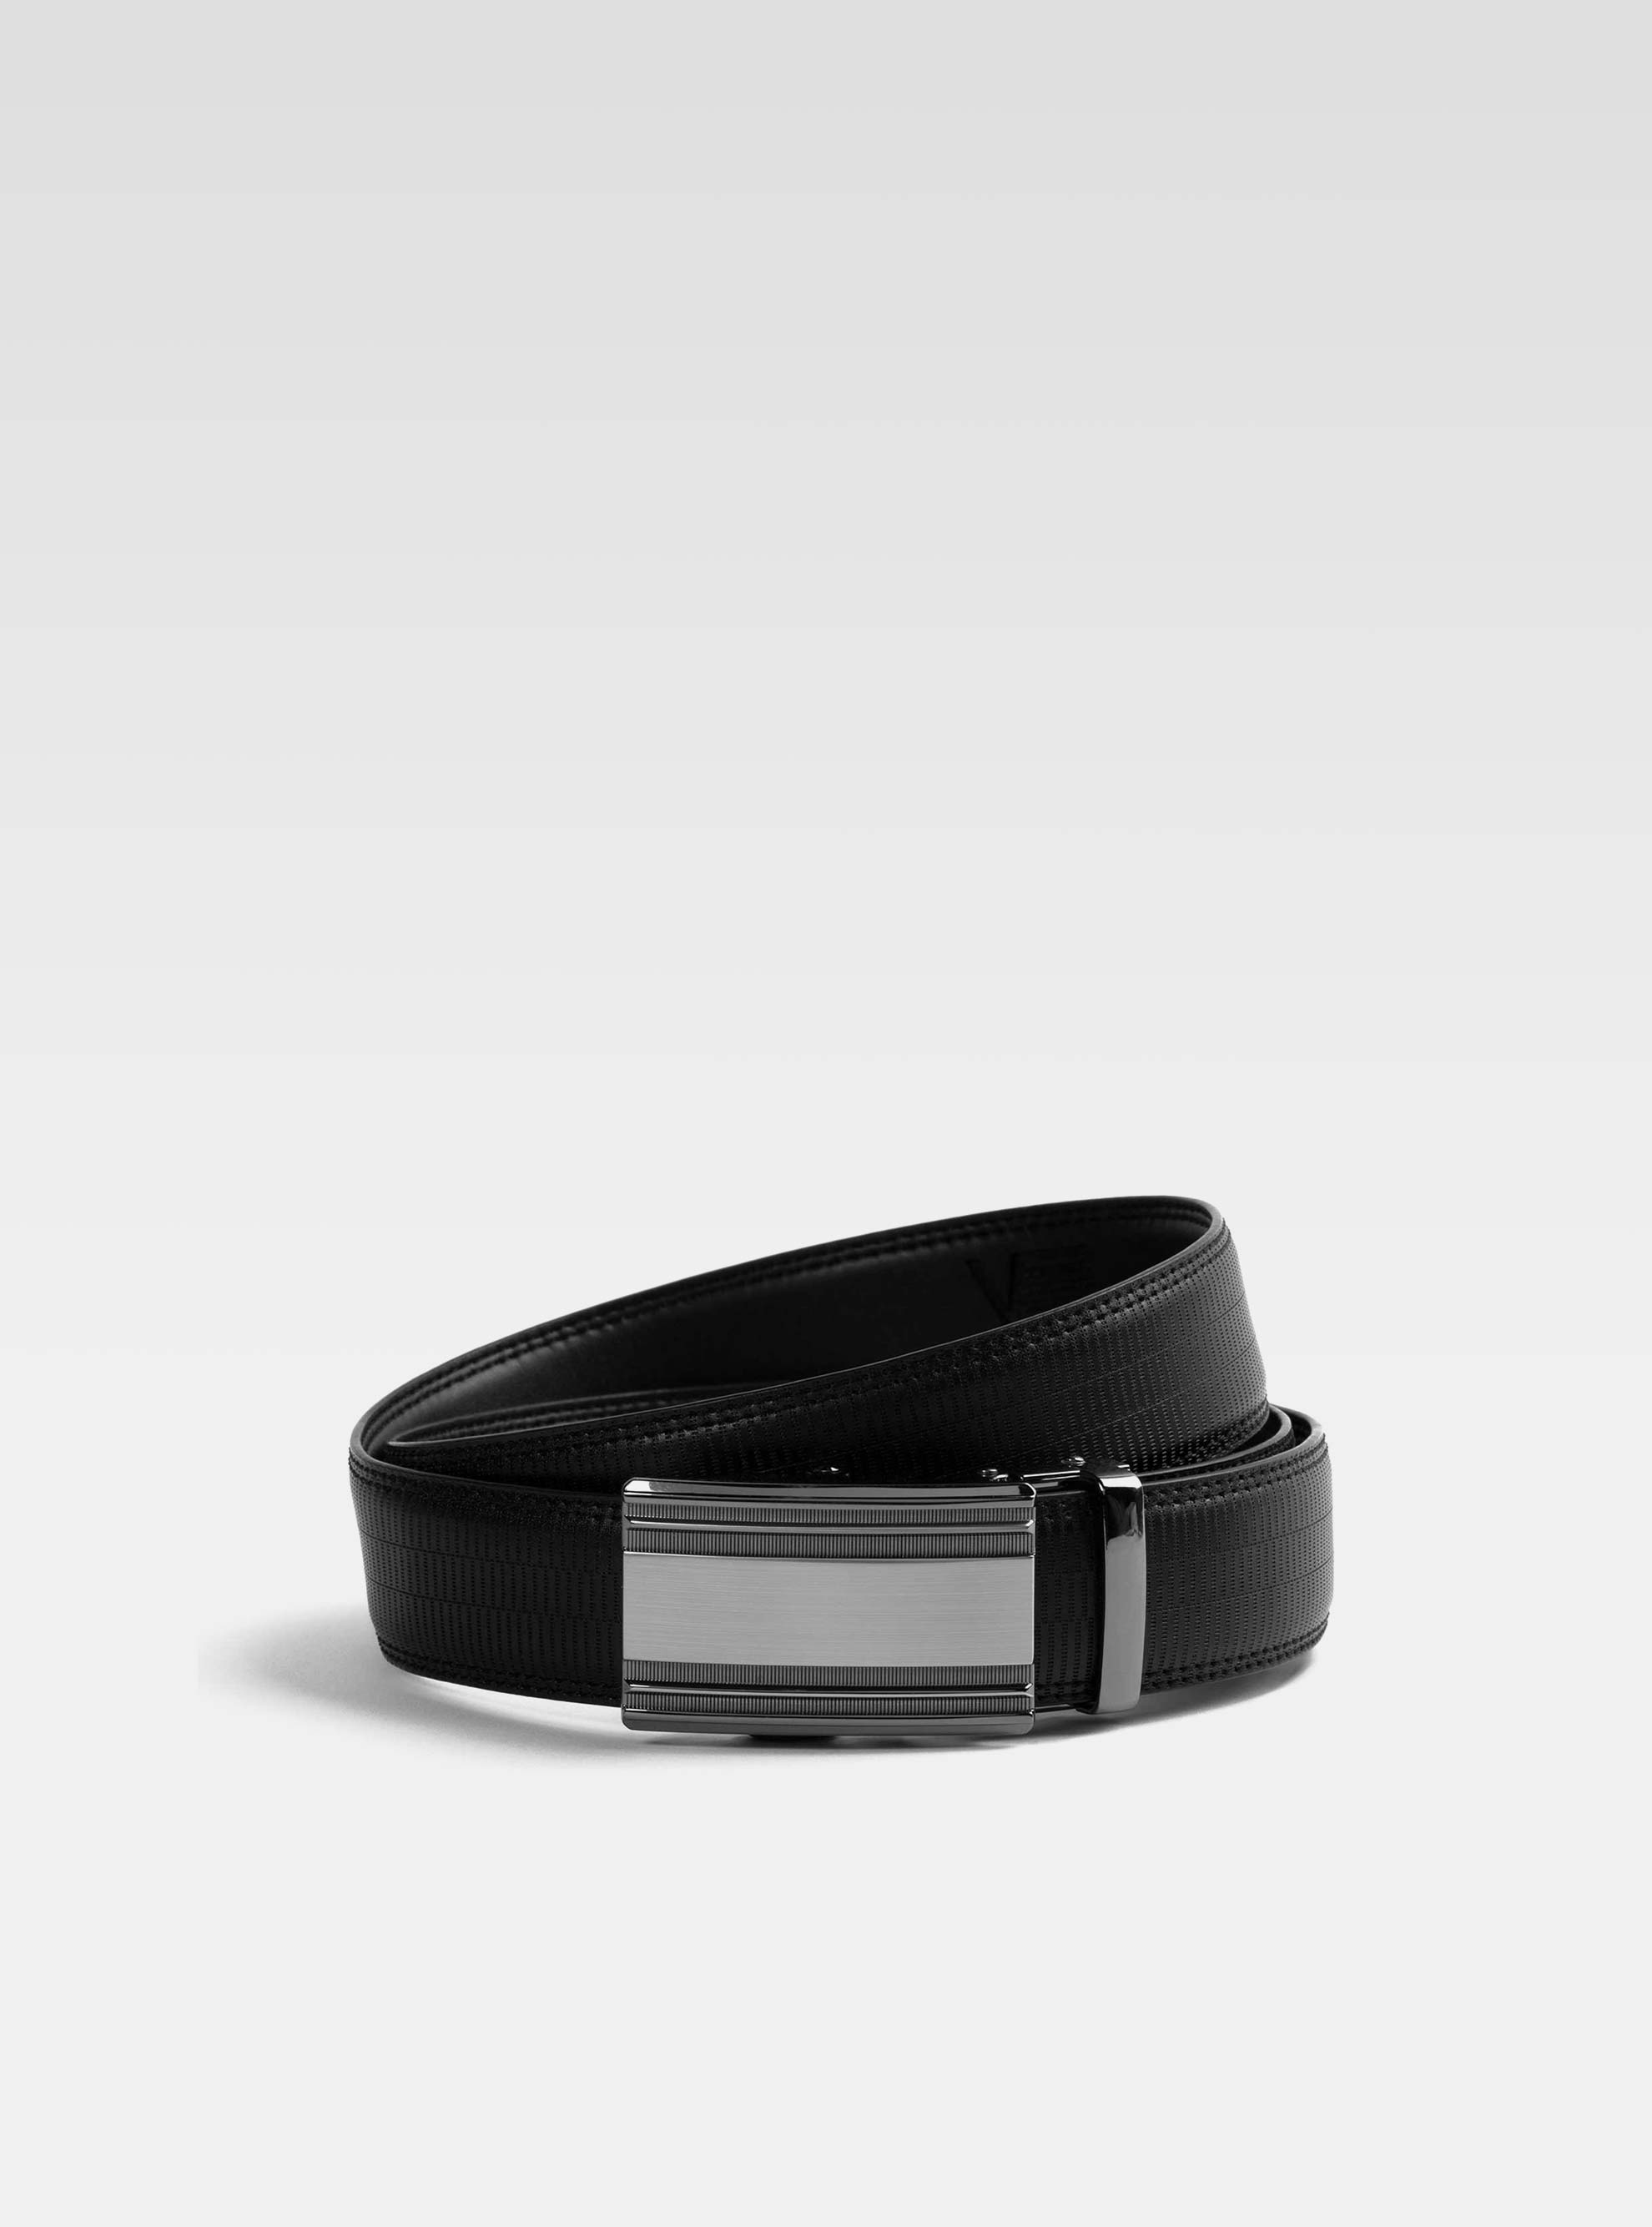 Black adjustable automatic belt